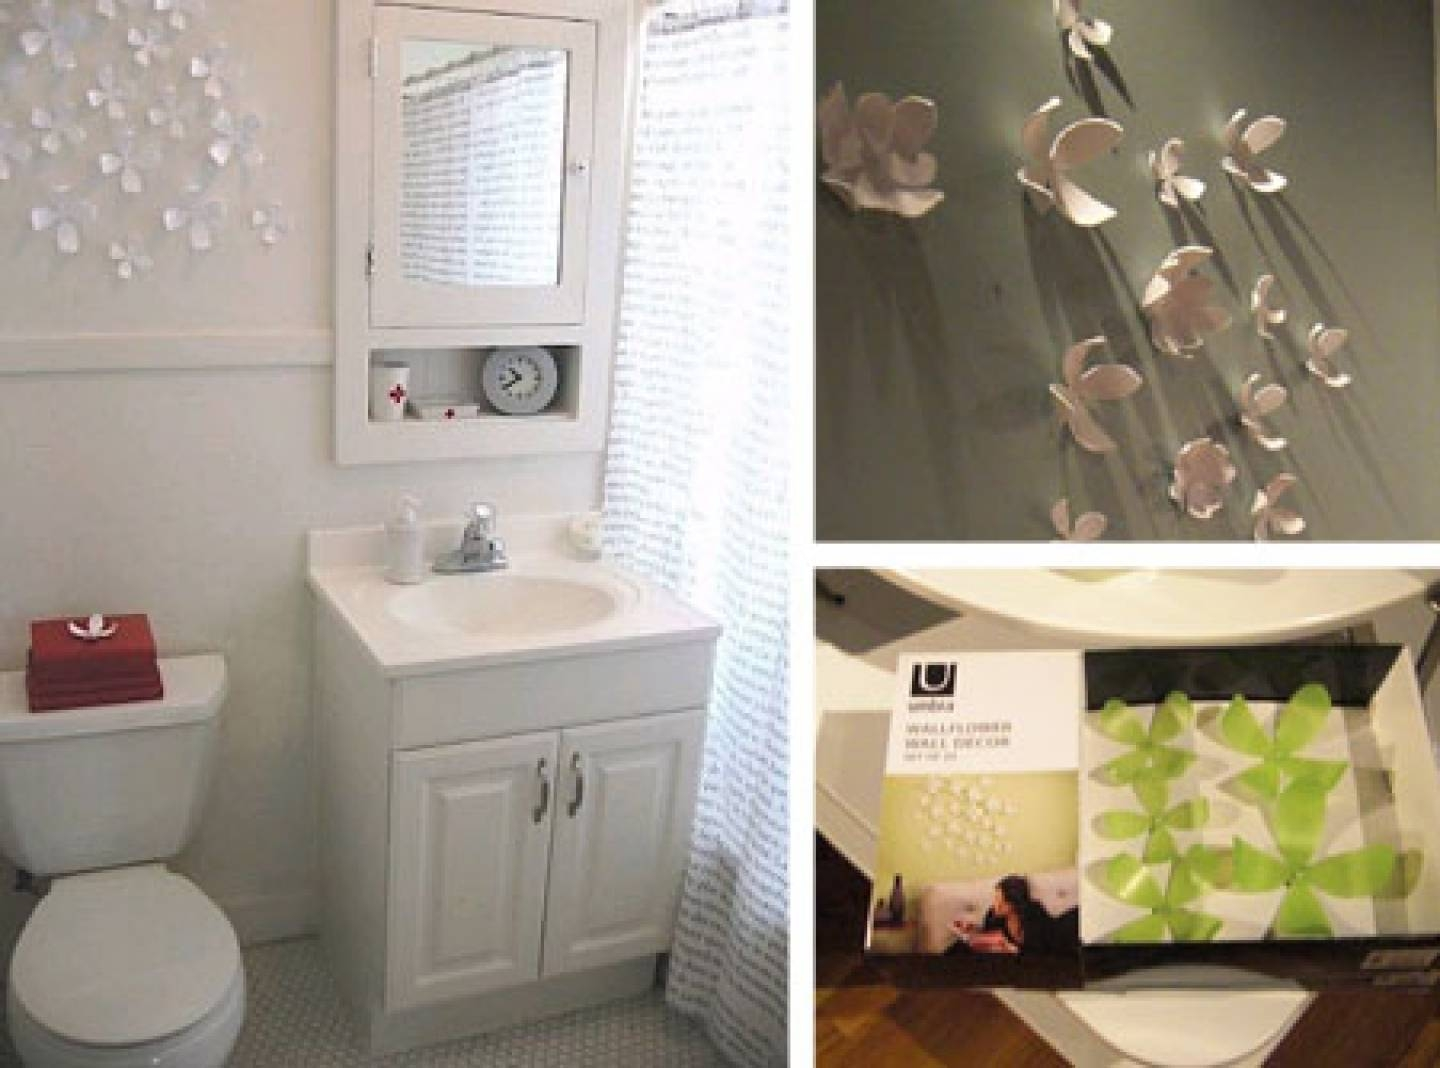 Download Bathroom Wall Decorations | Gen4Congress For Most Up To Date Bathroom Wall Hangings (View 12 of 20)